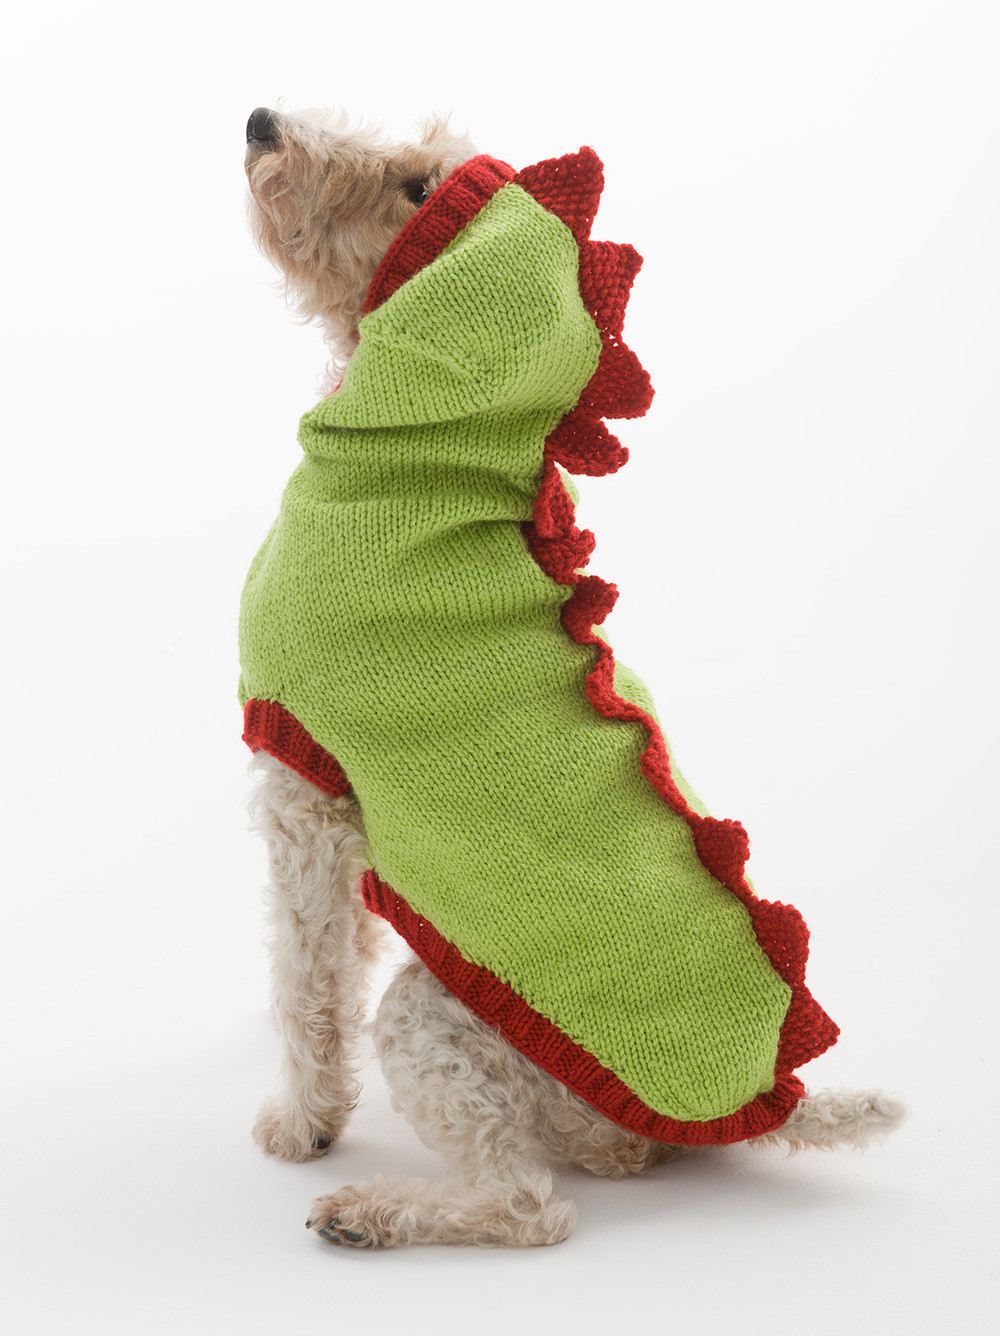 Dragon Slayer Dog Sweater in Lion Brand Wool Ease L